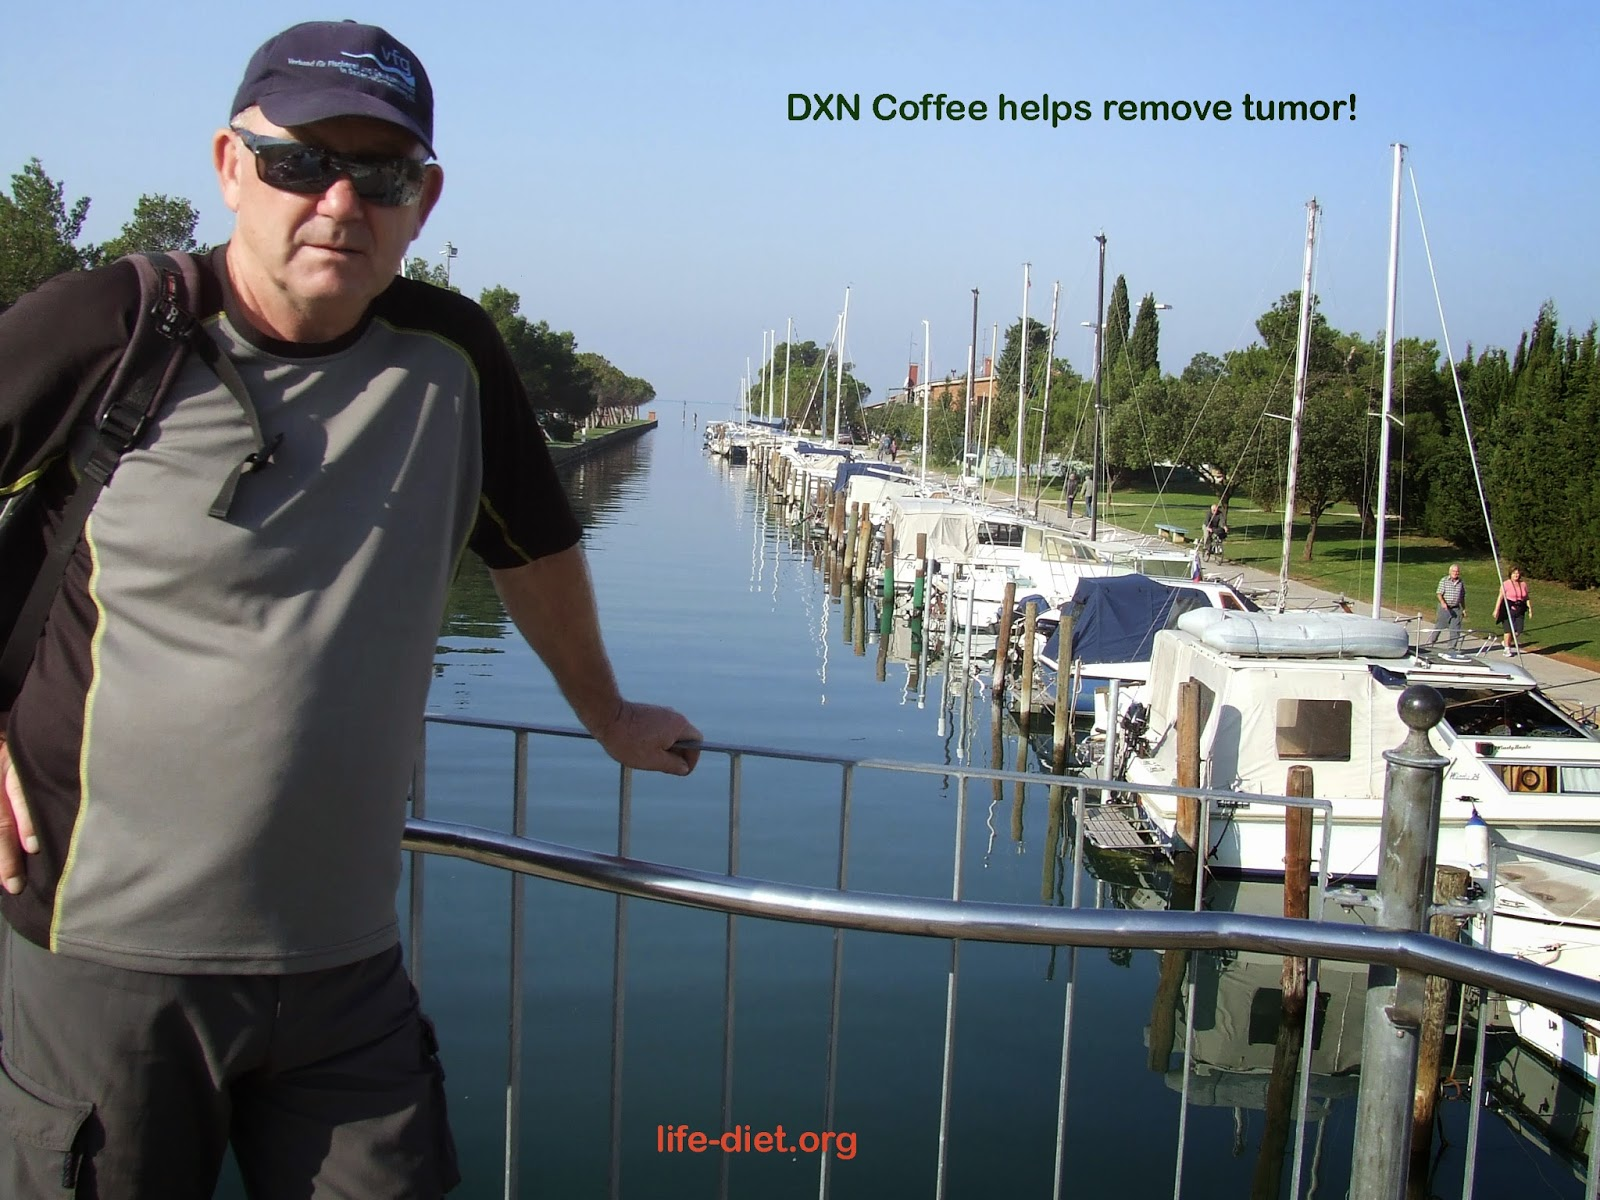 dxn coffee removes tumor